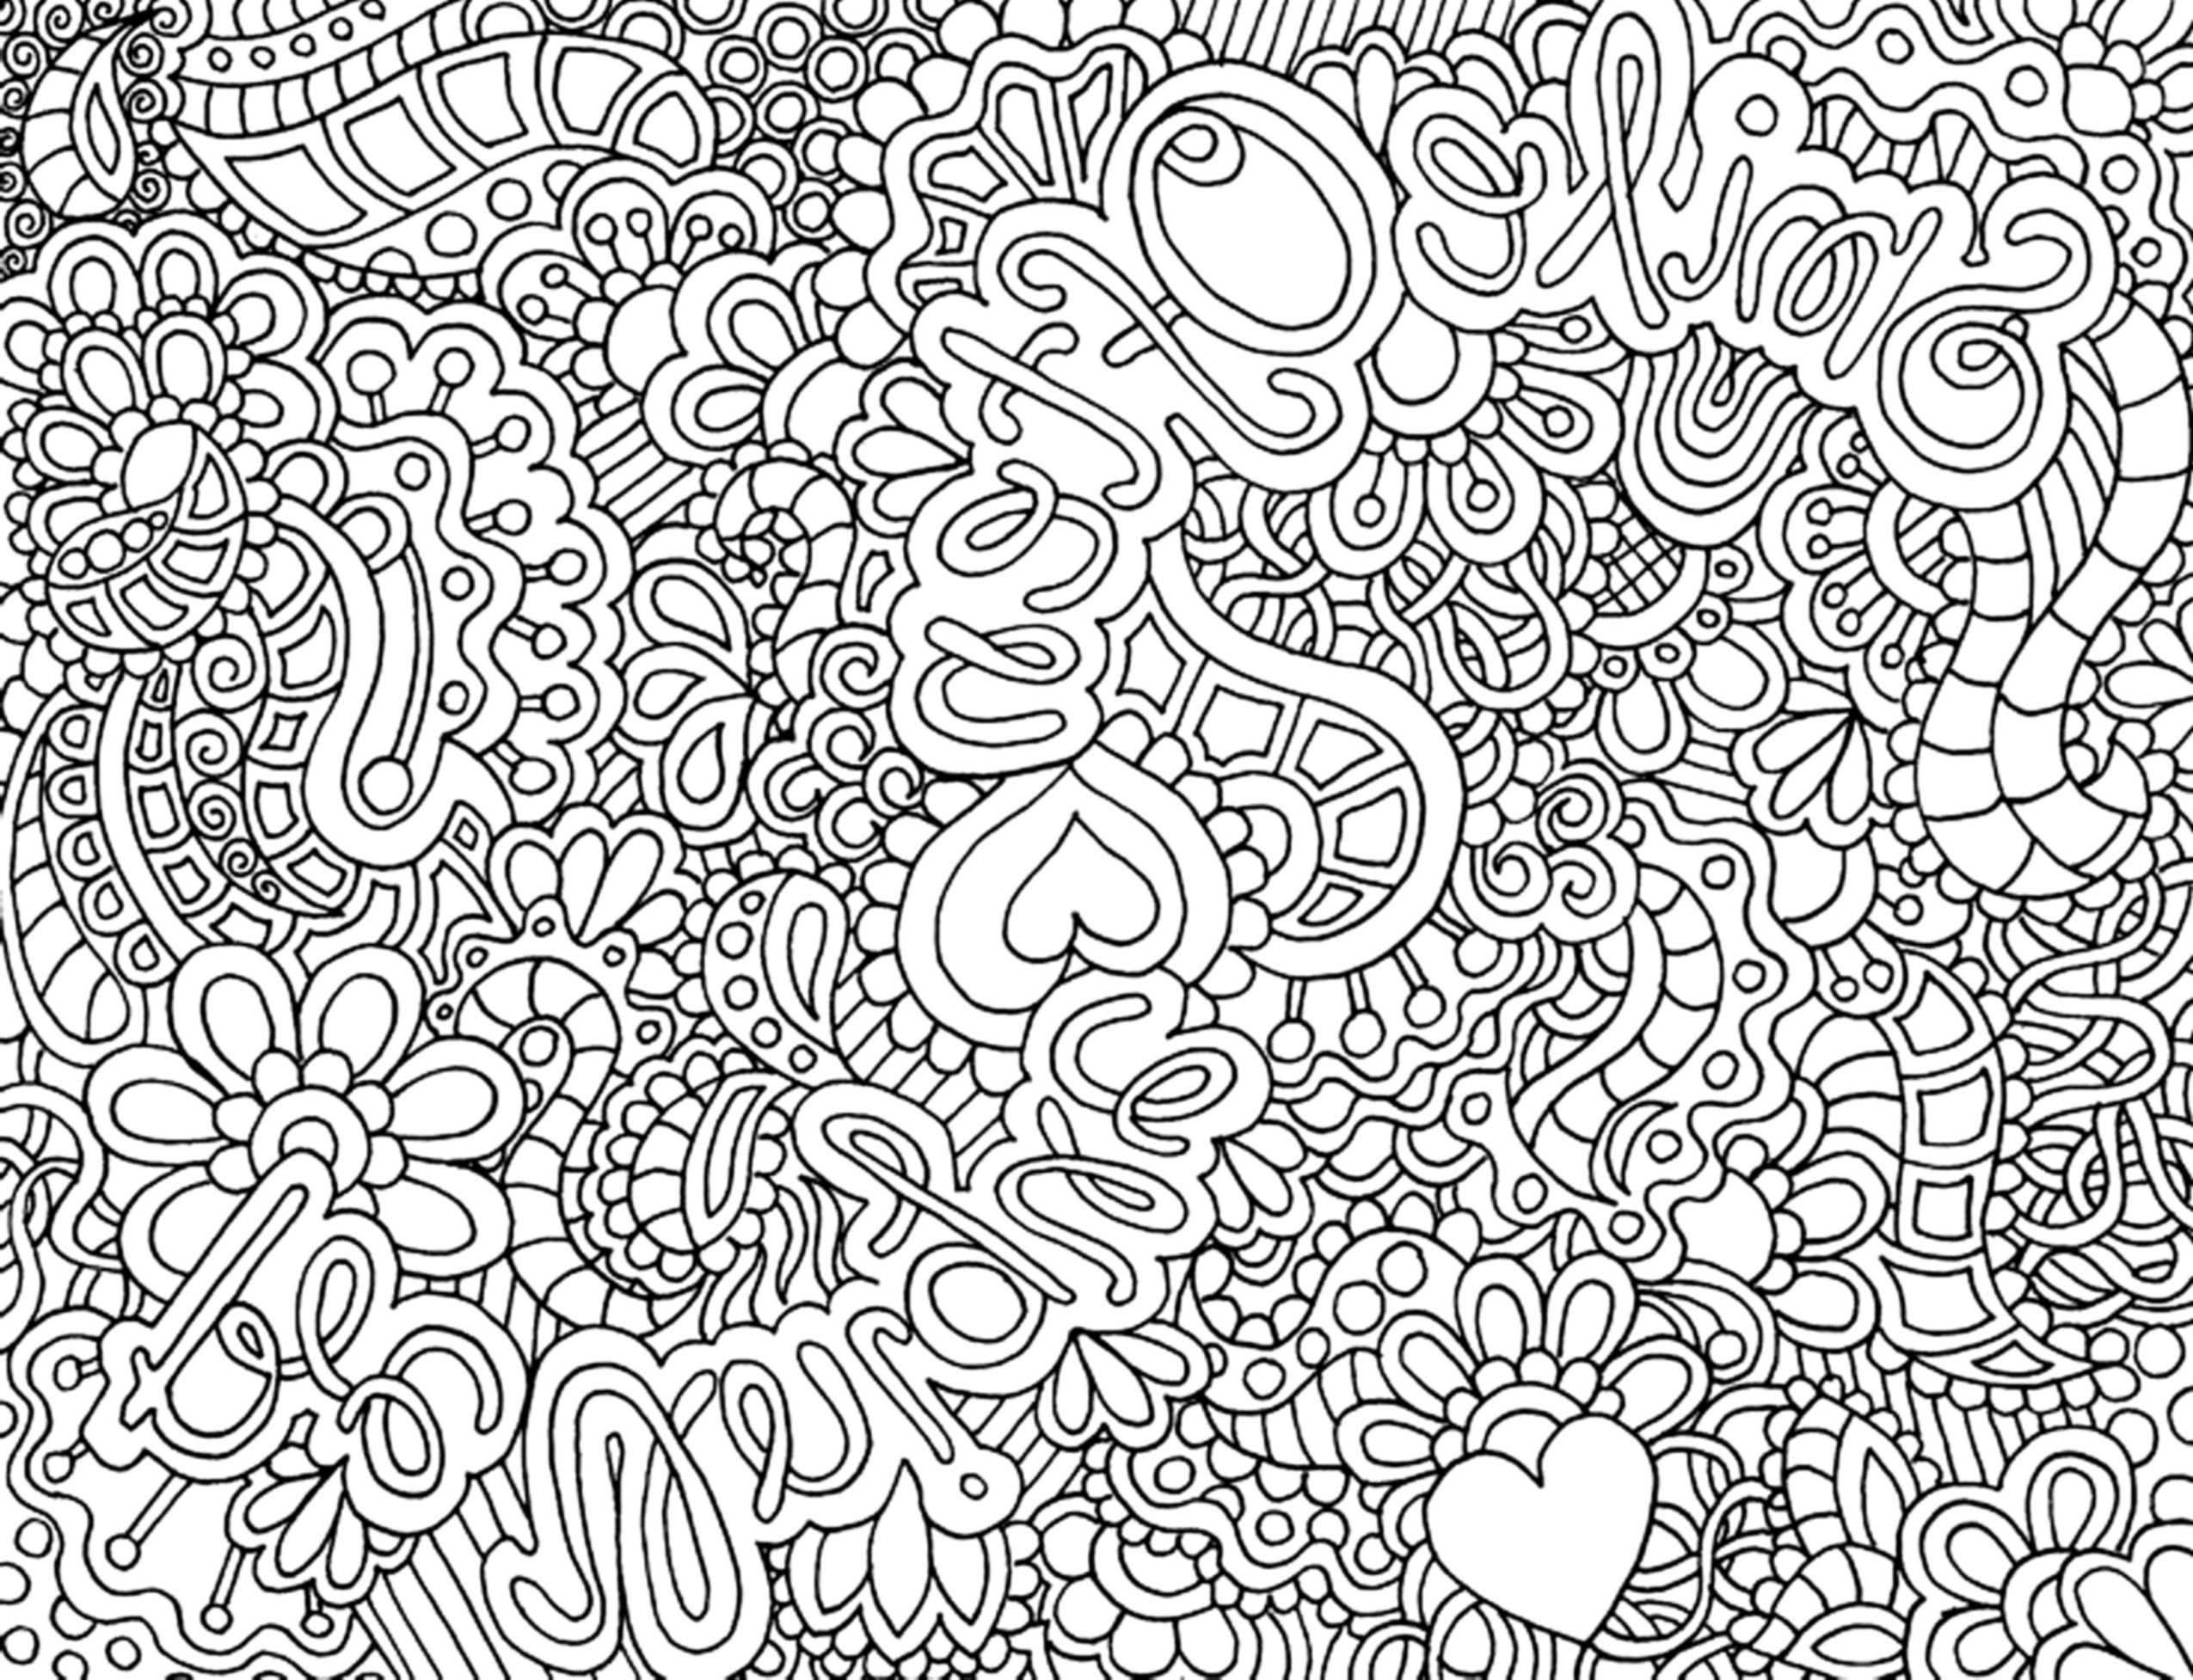 Complex Coloring Pages For Teenagers Coloring Pages For Teenagers Abstract Coloring Pages Detailed Coloring Pages